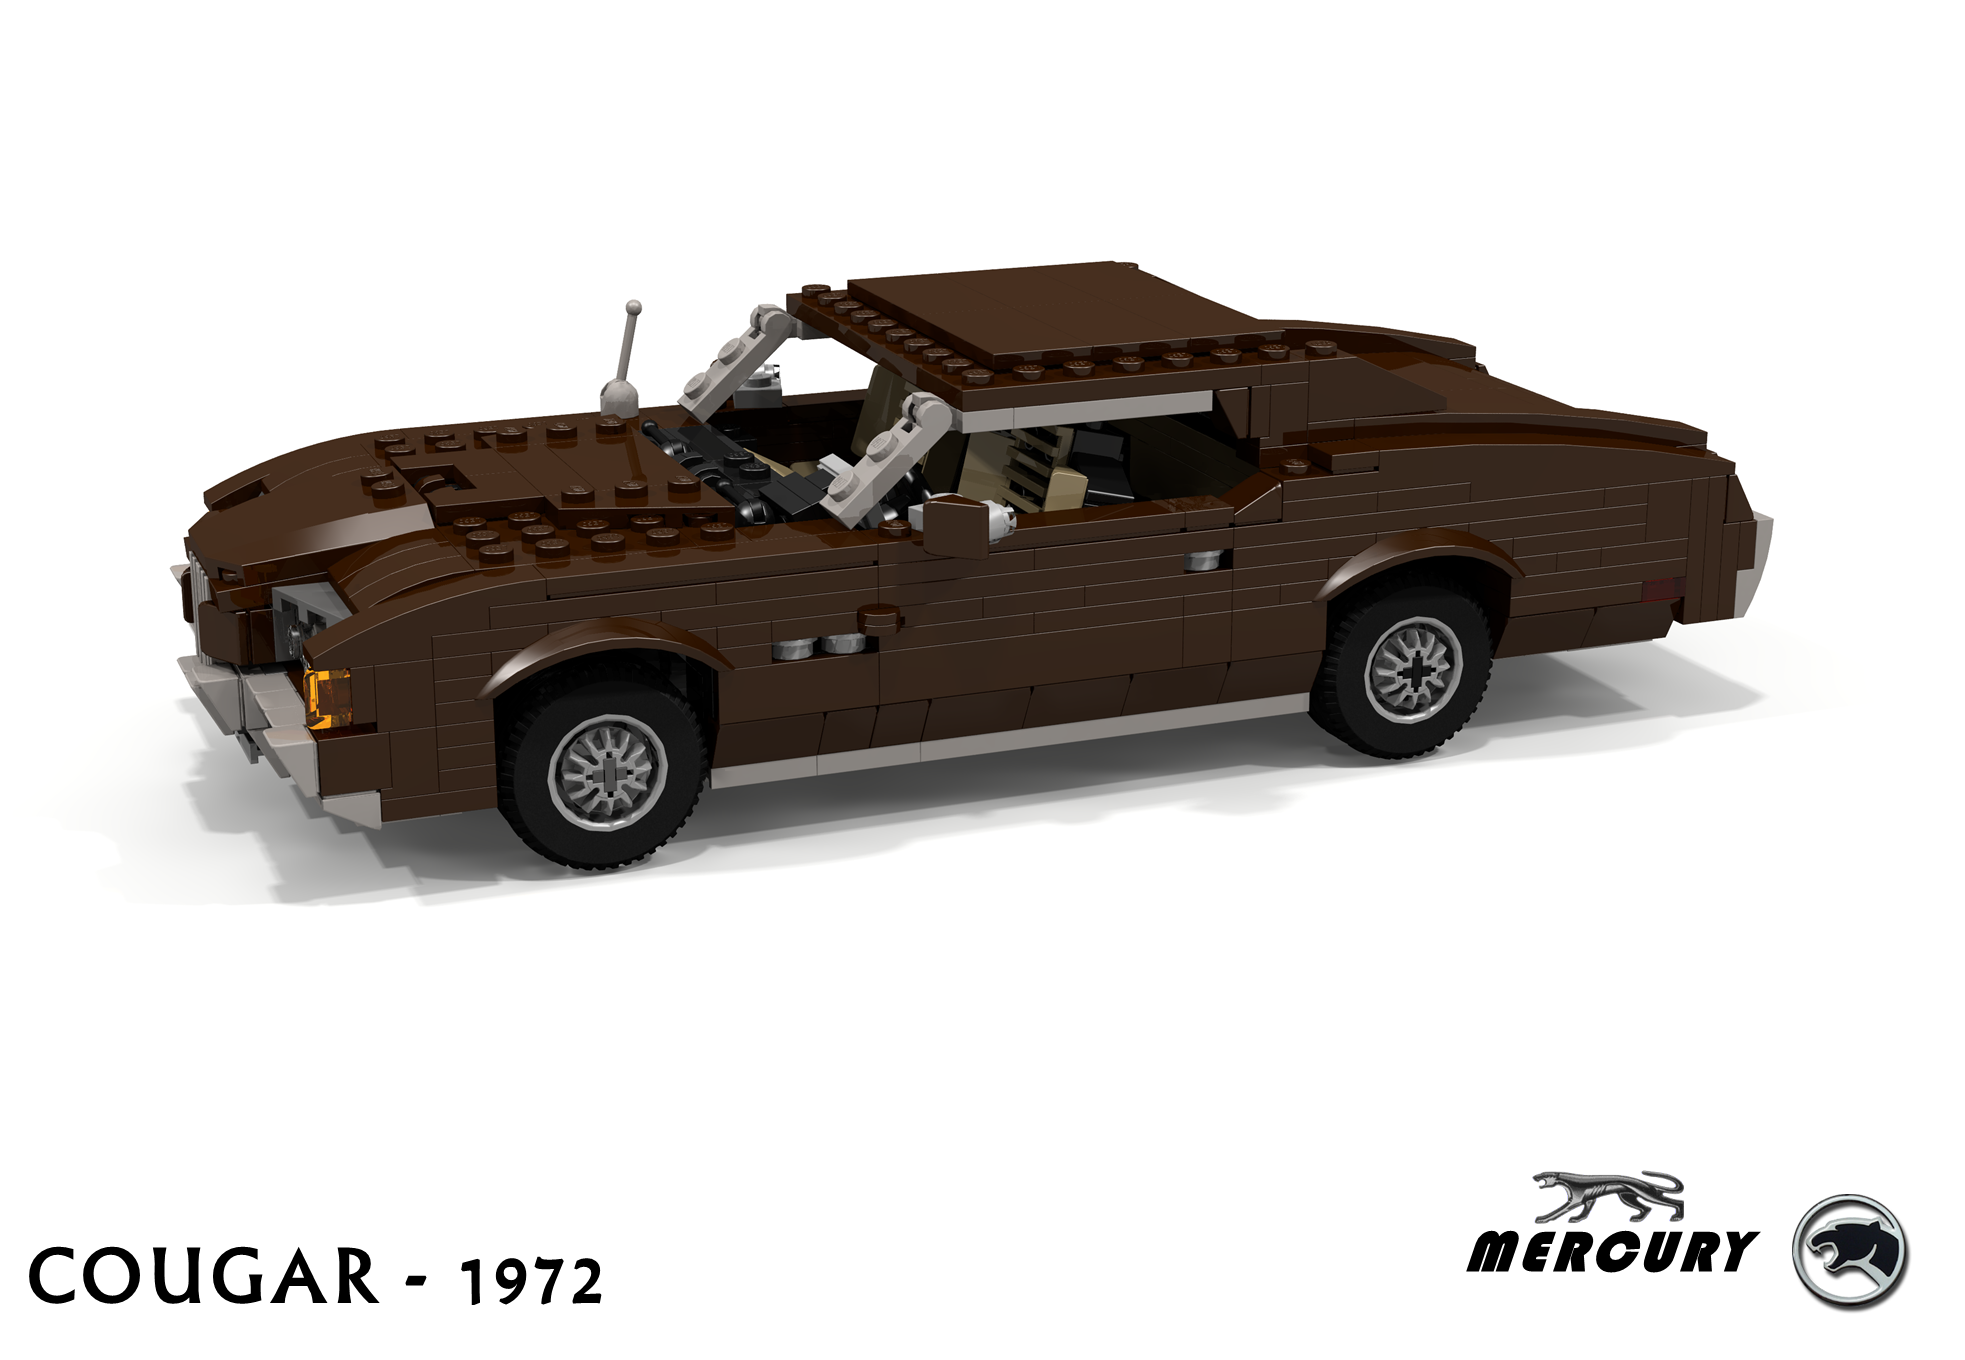 mercury_cougar_1972_coupe_04.png